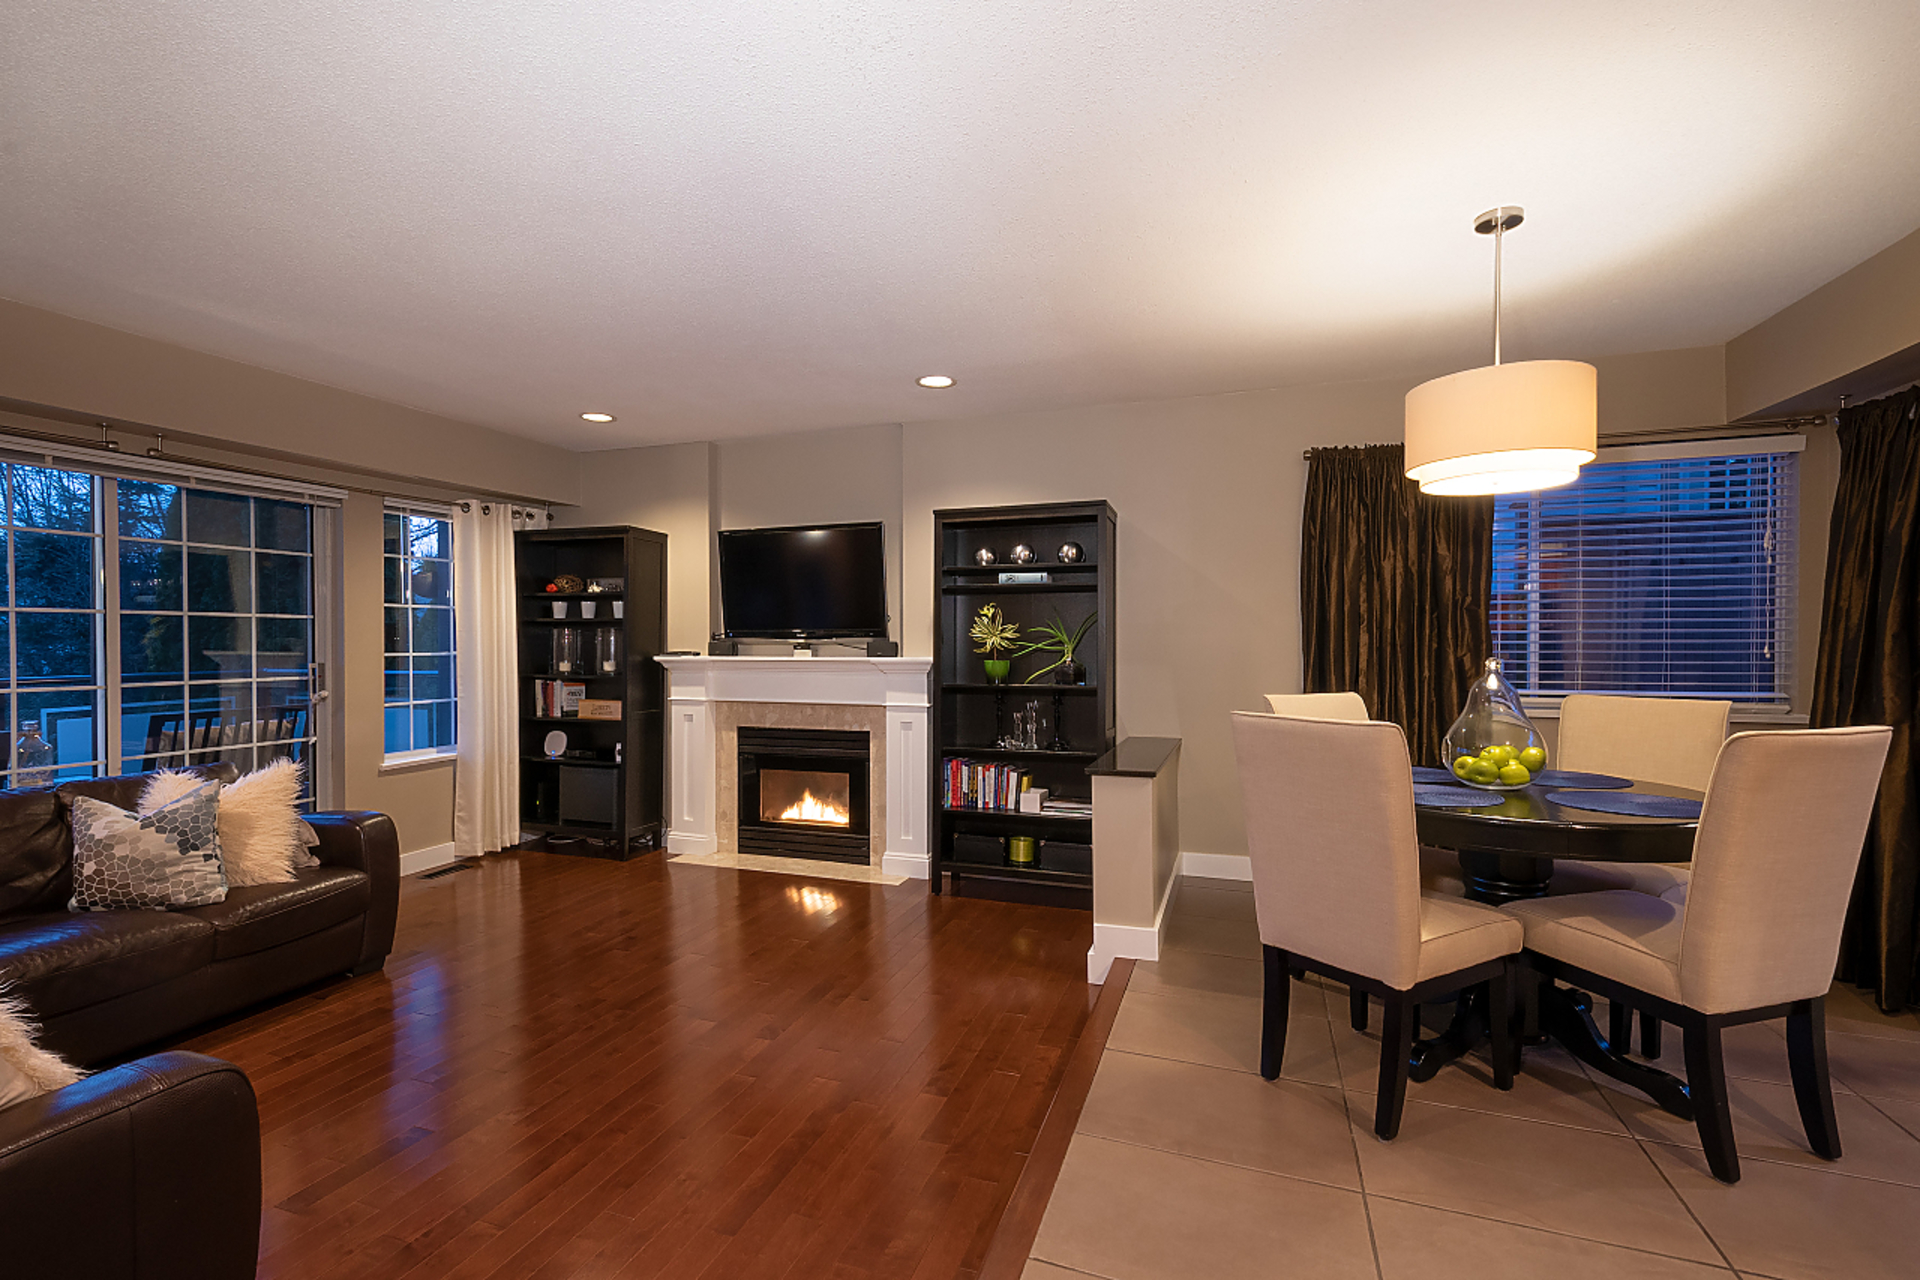 014a at 202 Ravine Drive, Heritage Mountain, Port Moody